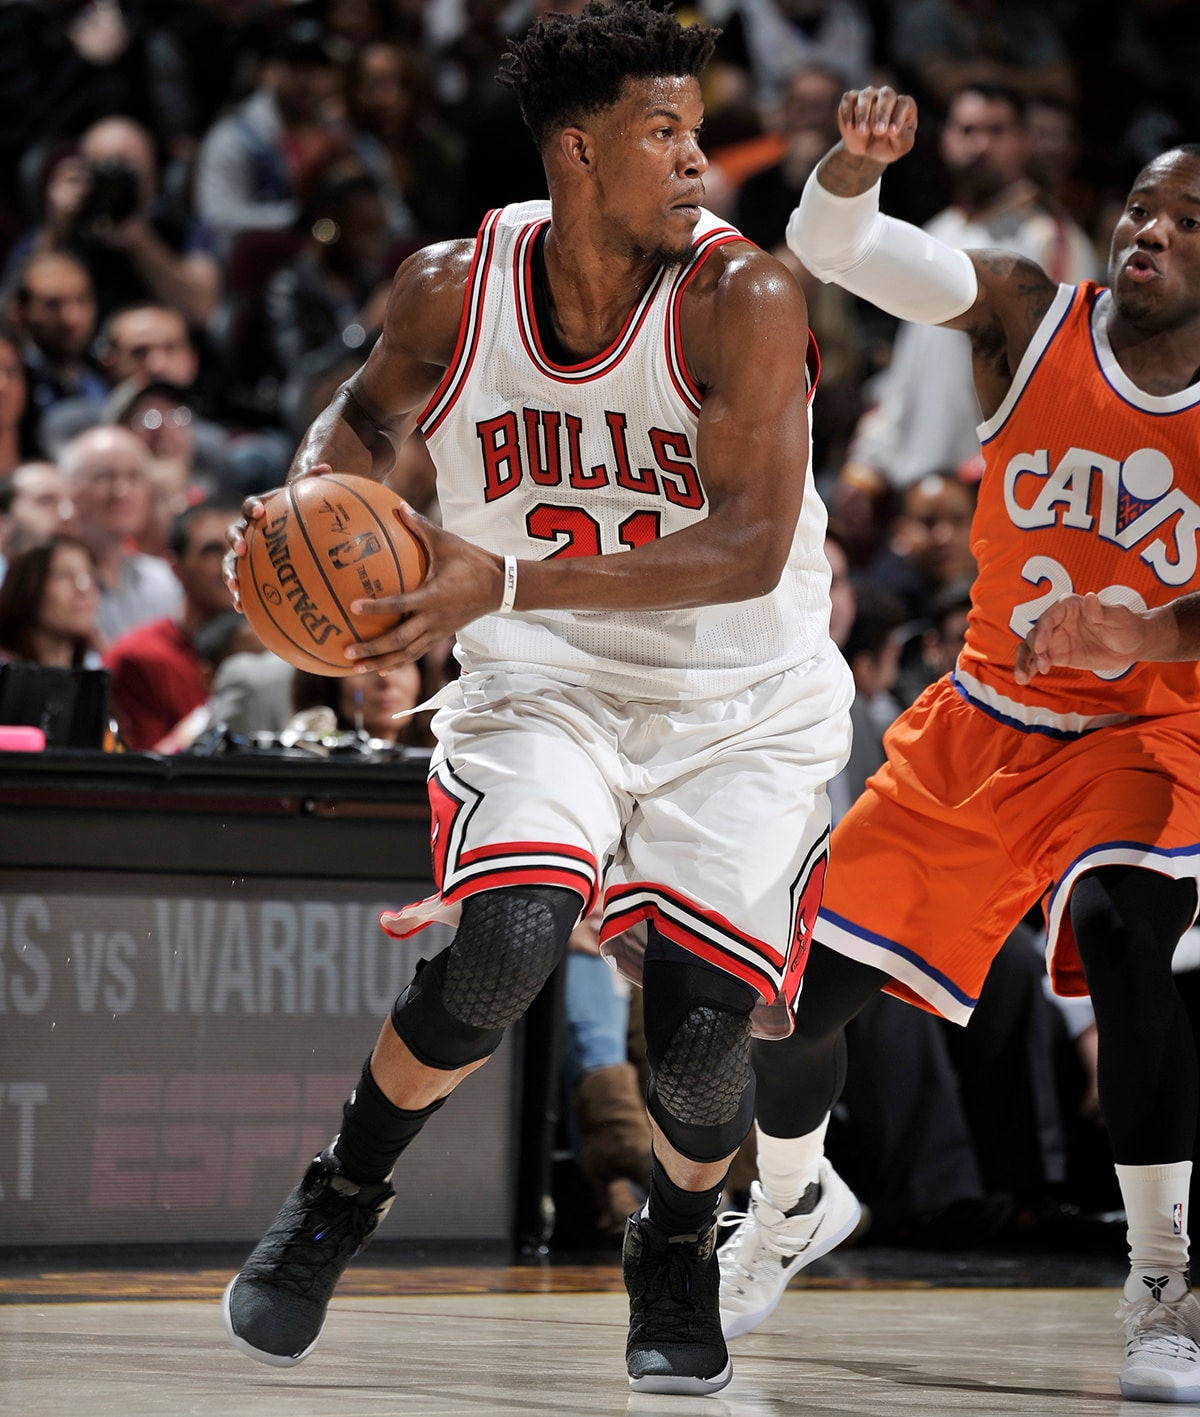 Bulls move on with flexibility and opportunity for the younger